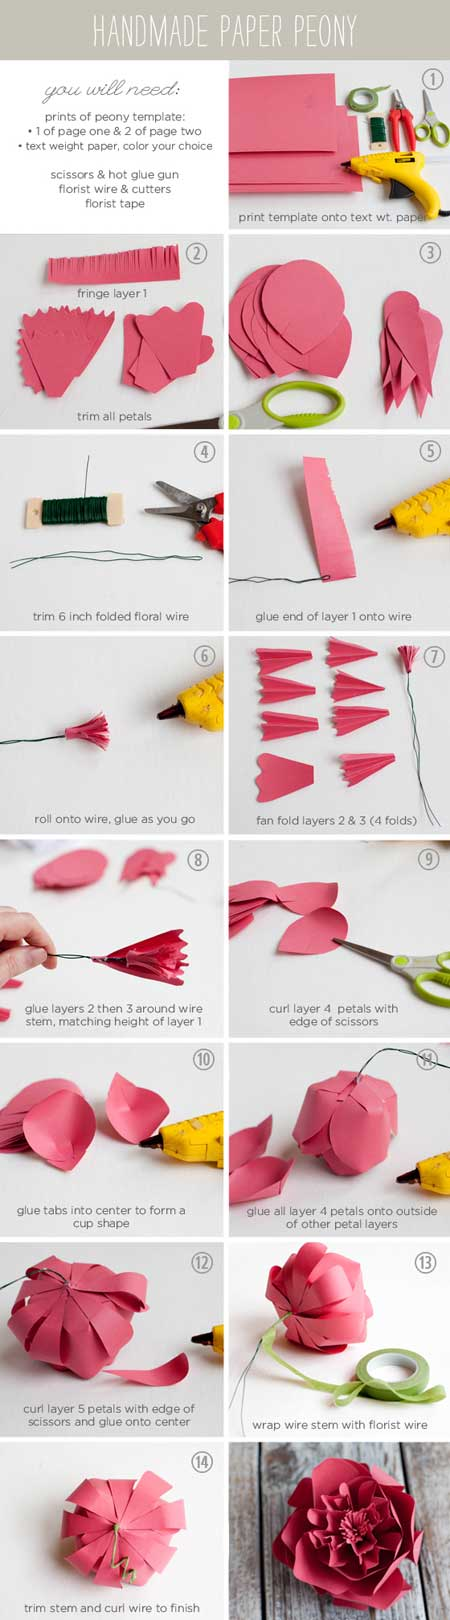 PaperPeonyInstructions